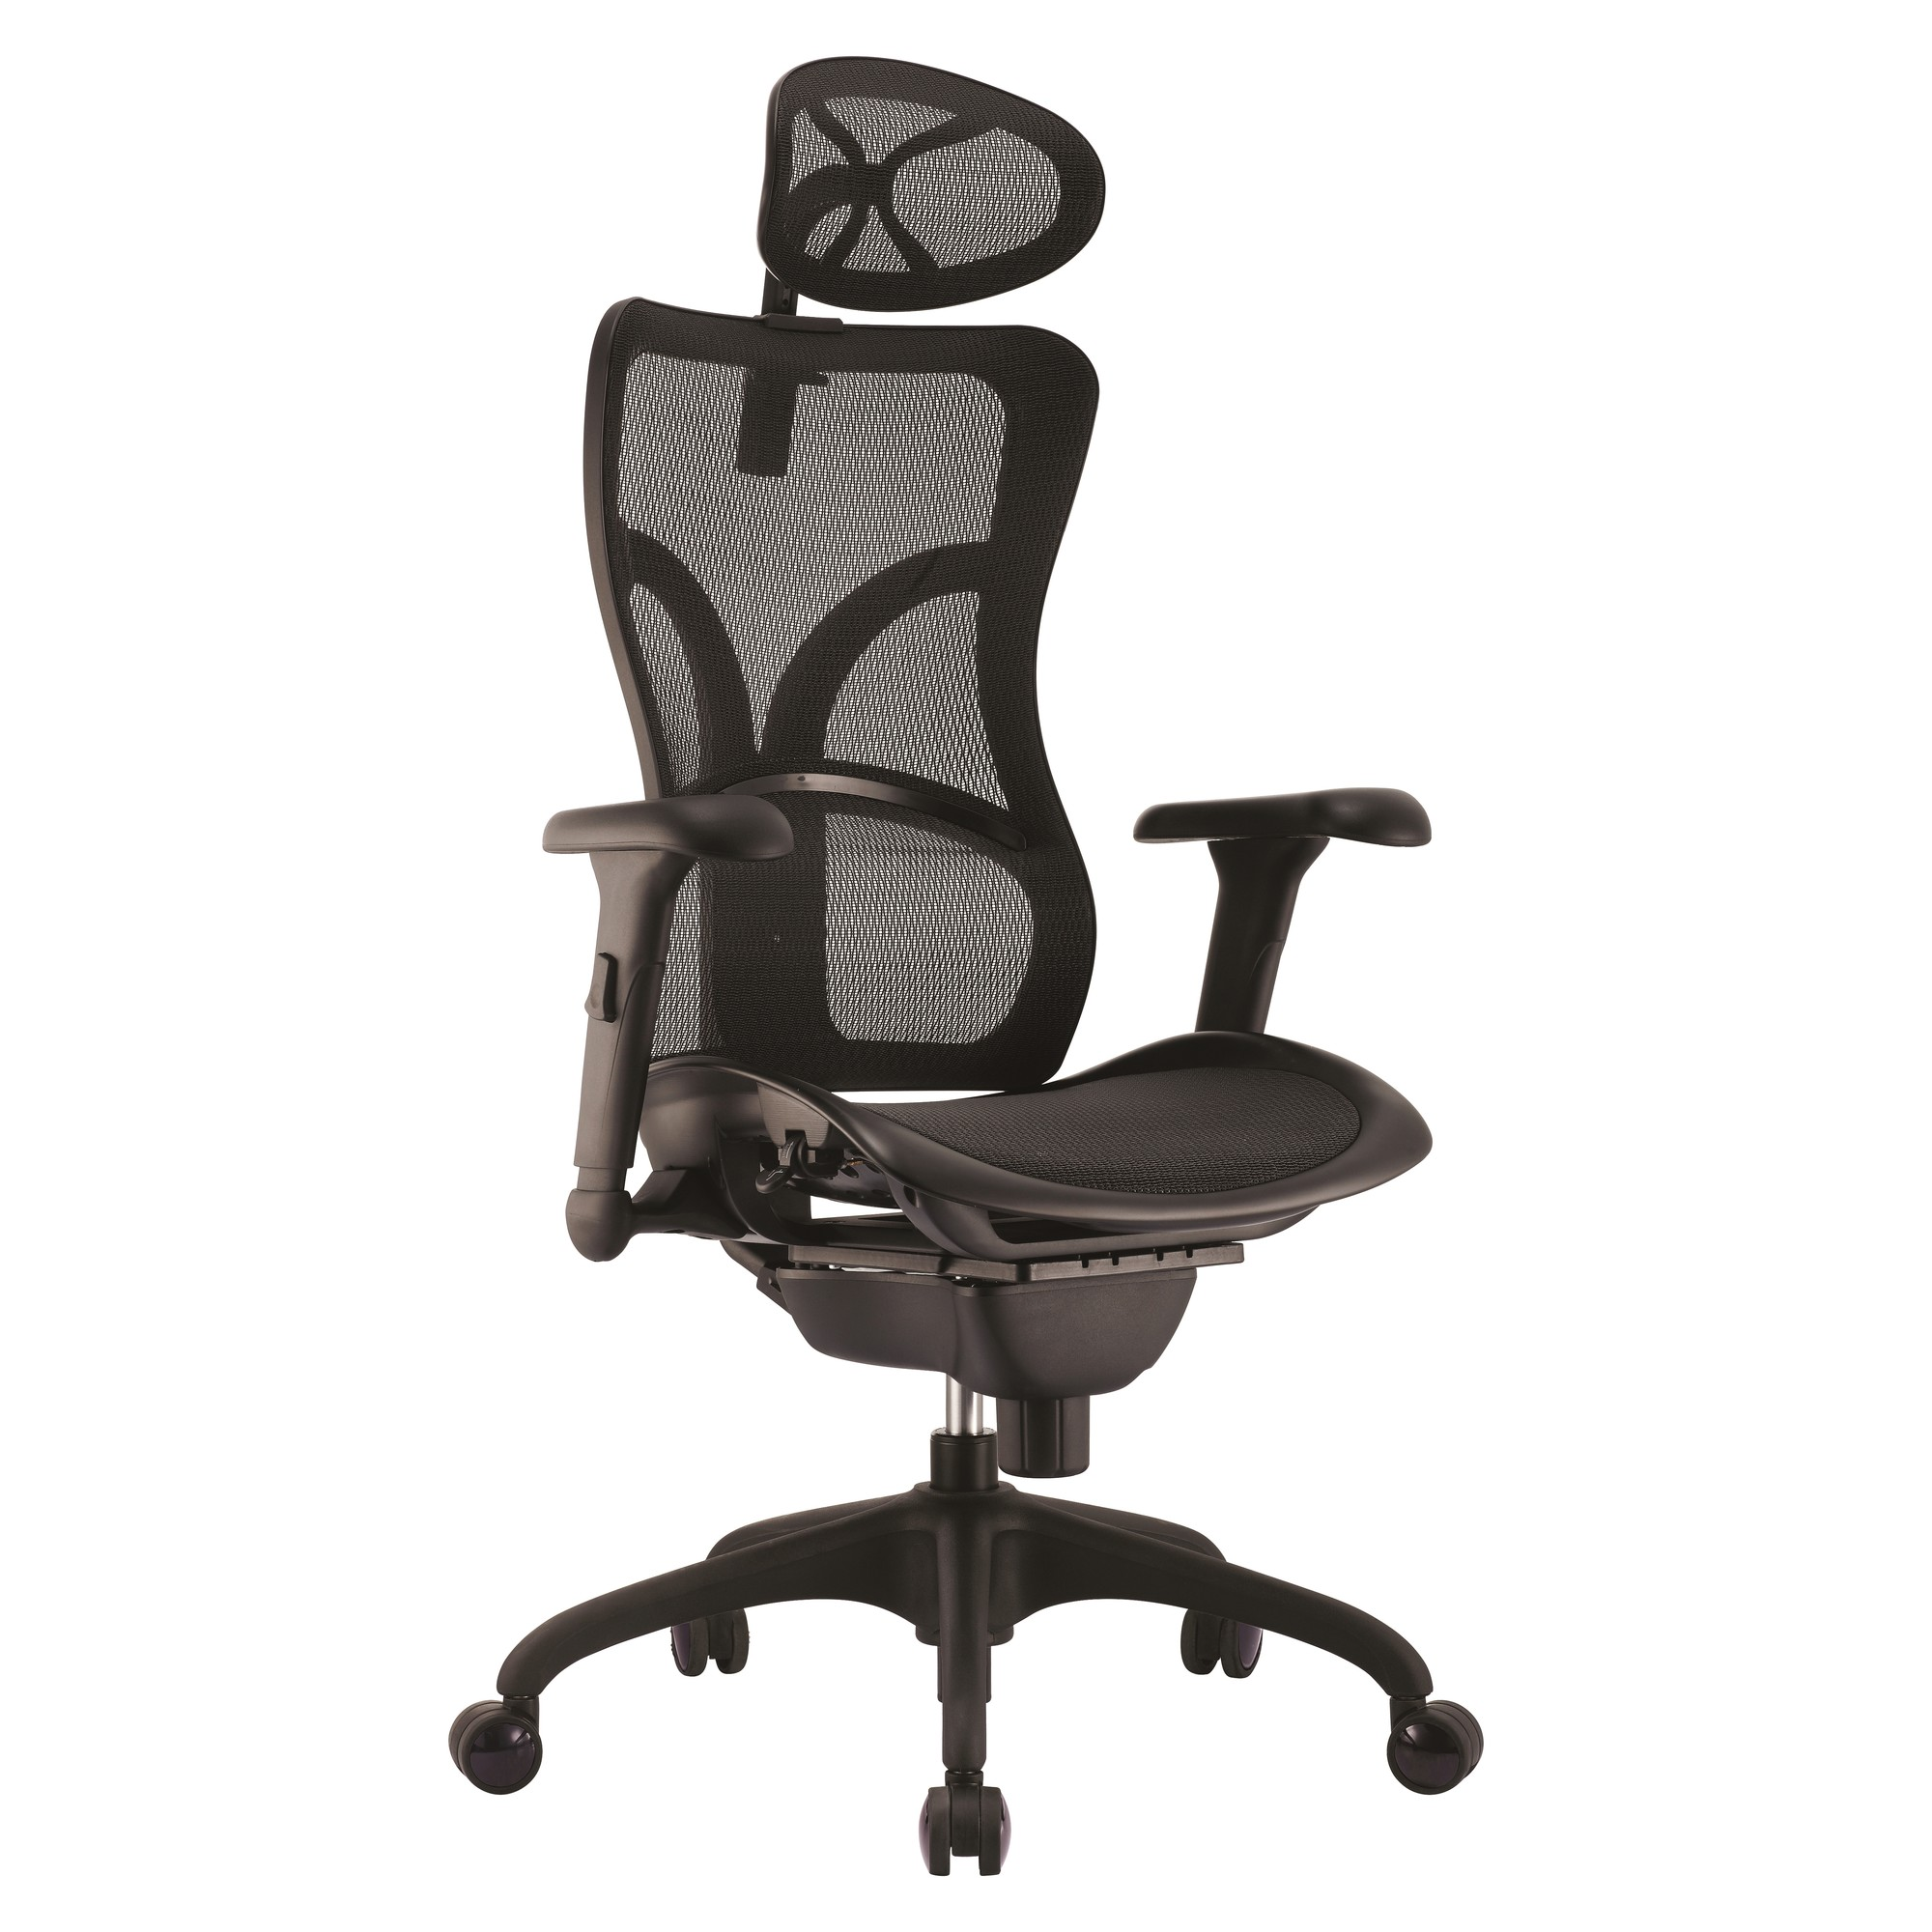 Charming SKU #TPWT2084 Zelda Adjustable Ergo Office Chair Is Also Sometimes Listed  Under The Following Manufacturer Numbers: ZSERGBKN